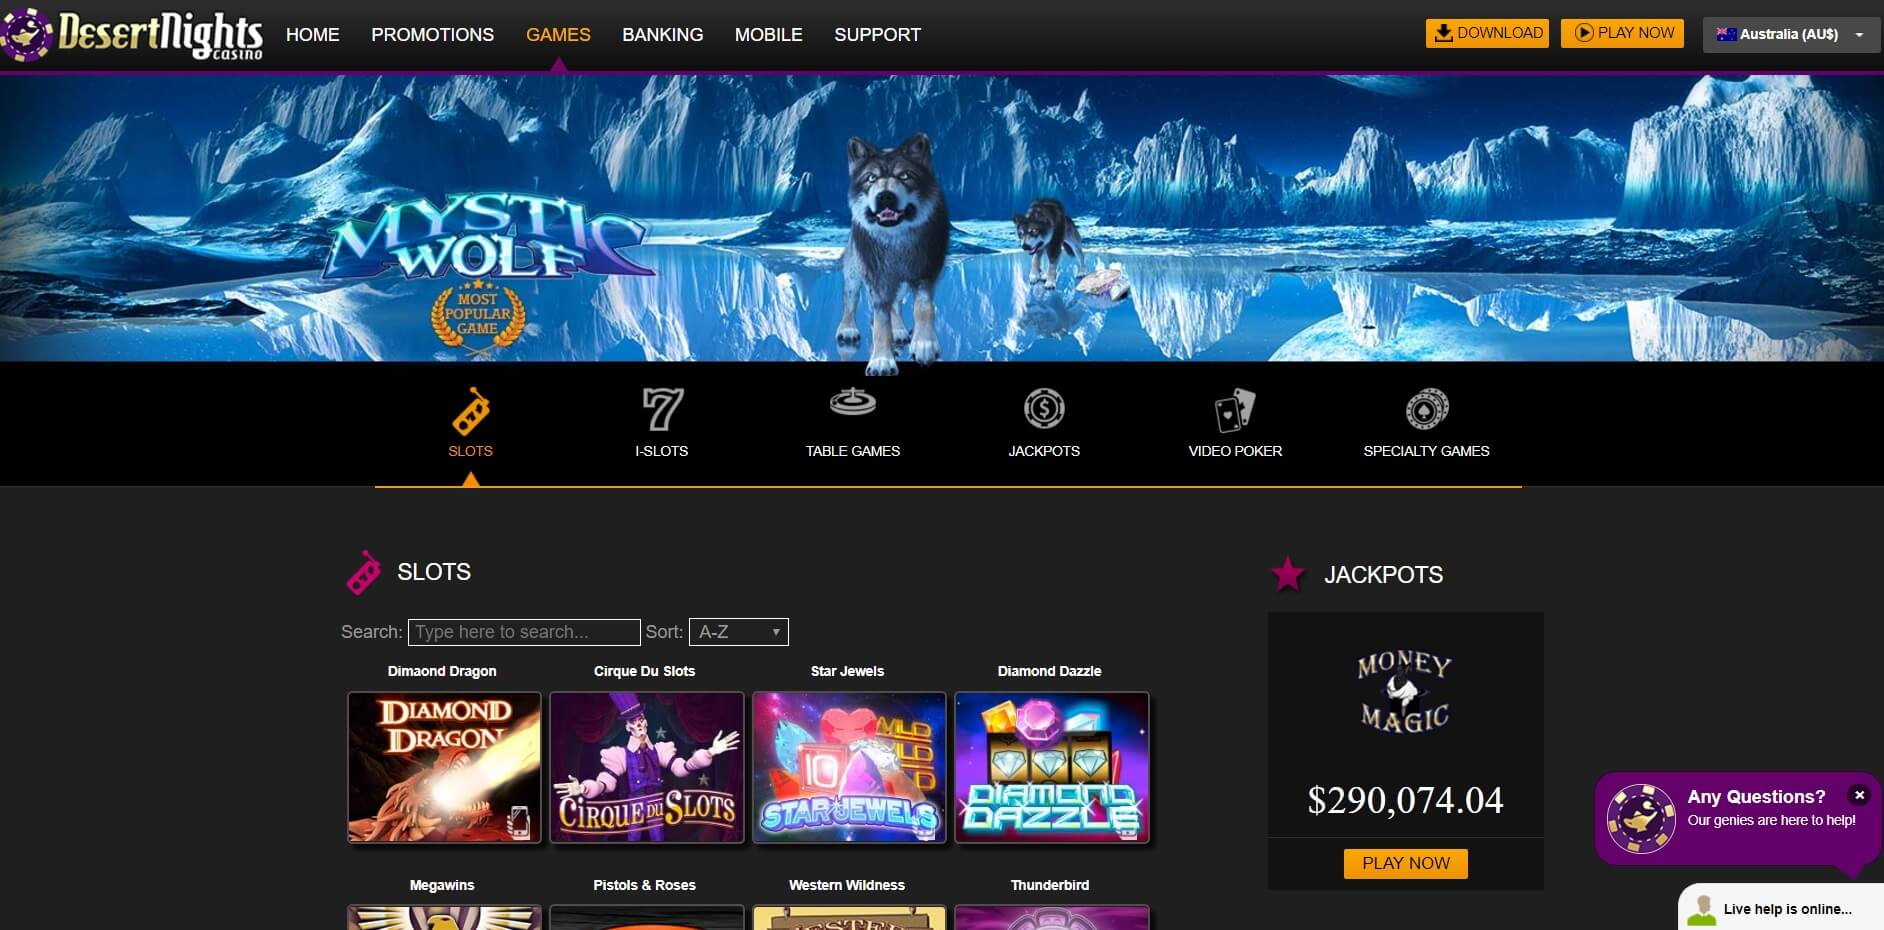 desert nights slots pokies and casino games